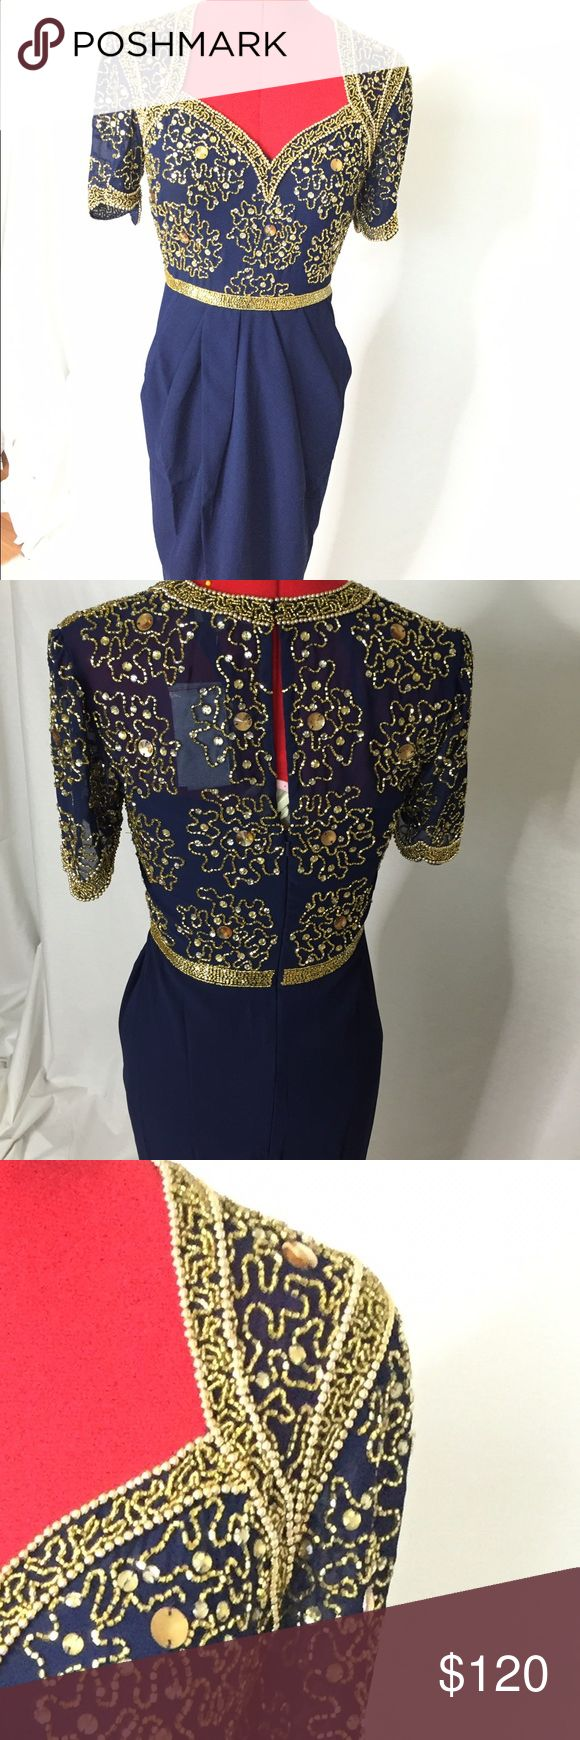 Virgos Lounge Navy Blue Beaded Dress. Sharp beaded midi dress. Dress is UK size 6/ US size 2. Garment is hand beaded and slight irregularities should not be regarded as defect. It is normal for some beads to fall off. Virgos Lounge  Dresses Midi